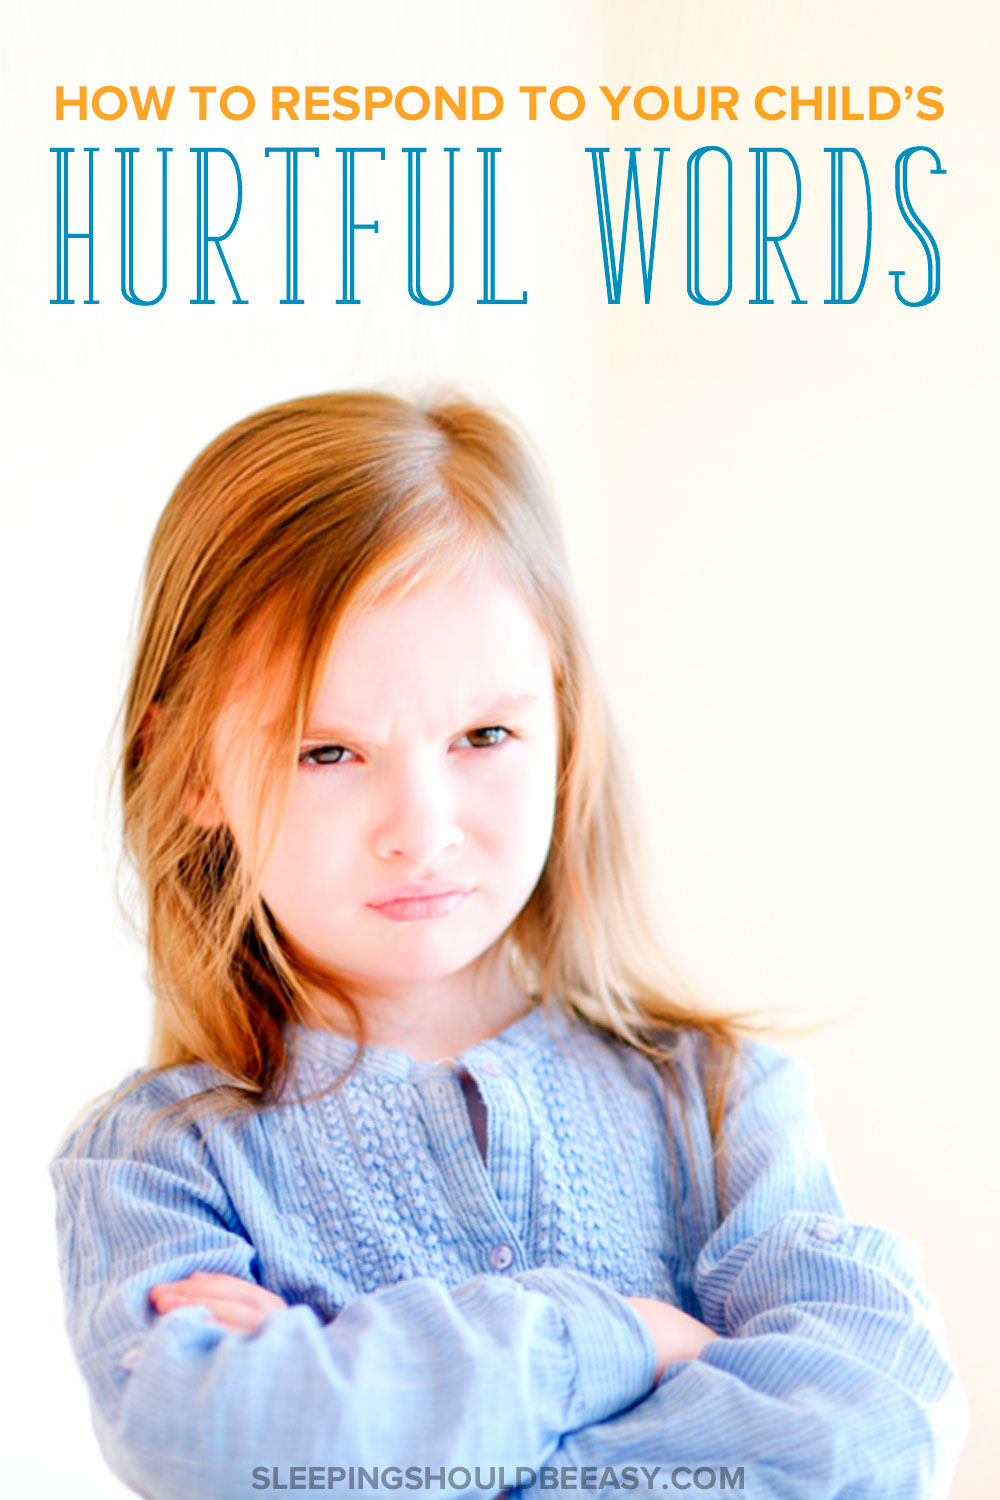 Your sweet, angelic child has suddenly said mean things to you. Here's how to respond when your child says hurtful words.